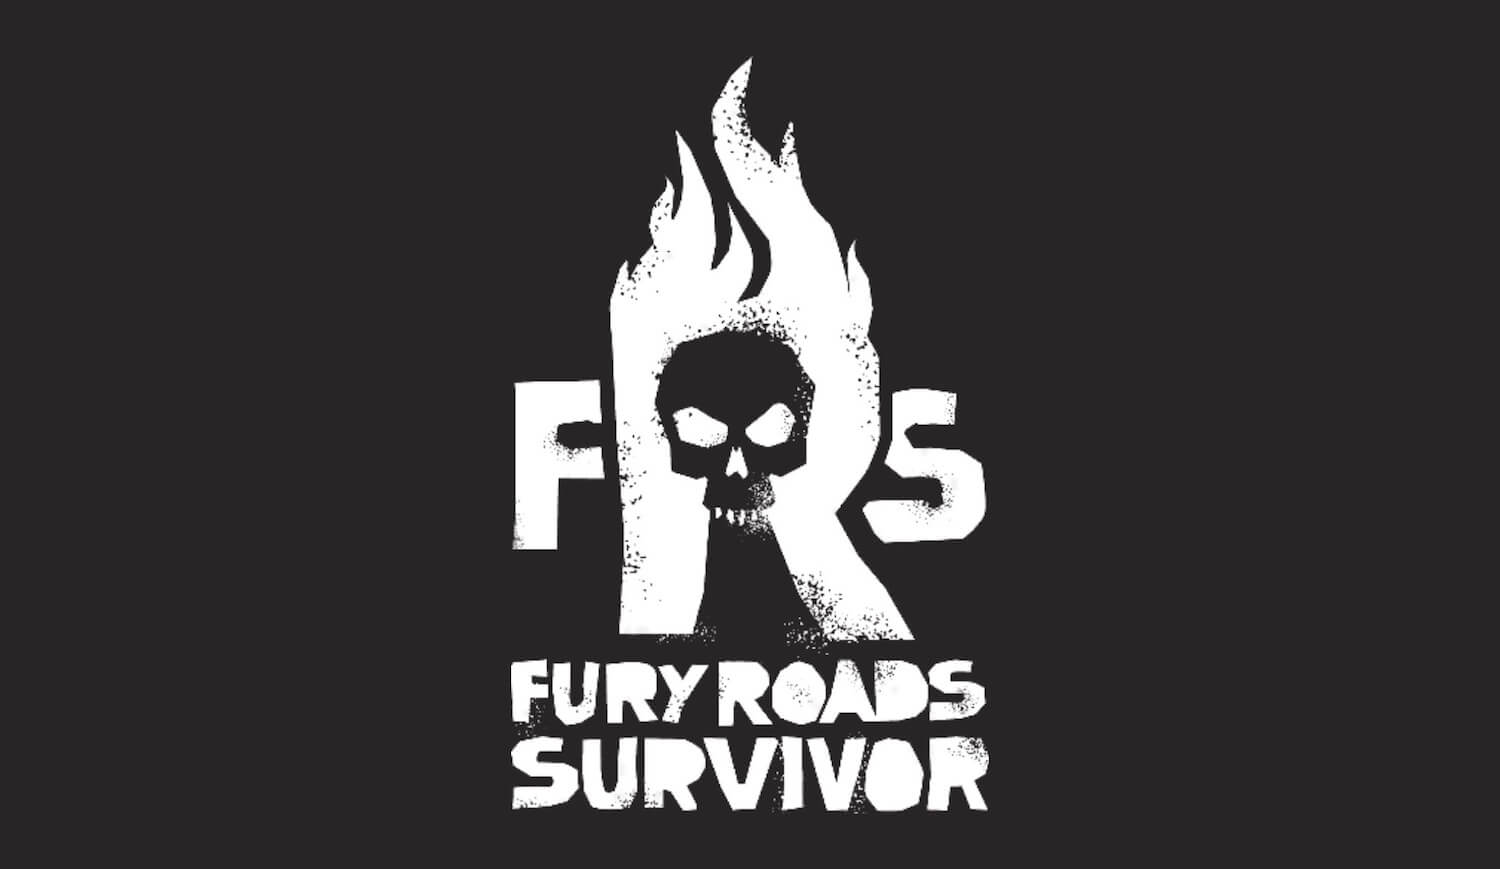 Fury_Roads_Survivor_1